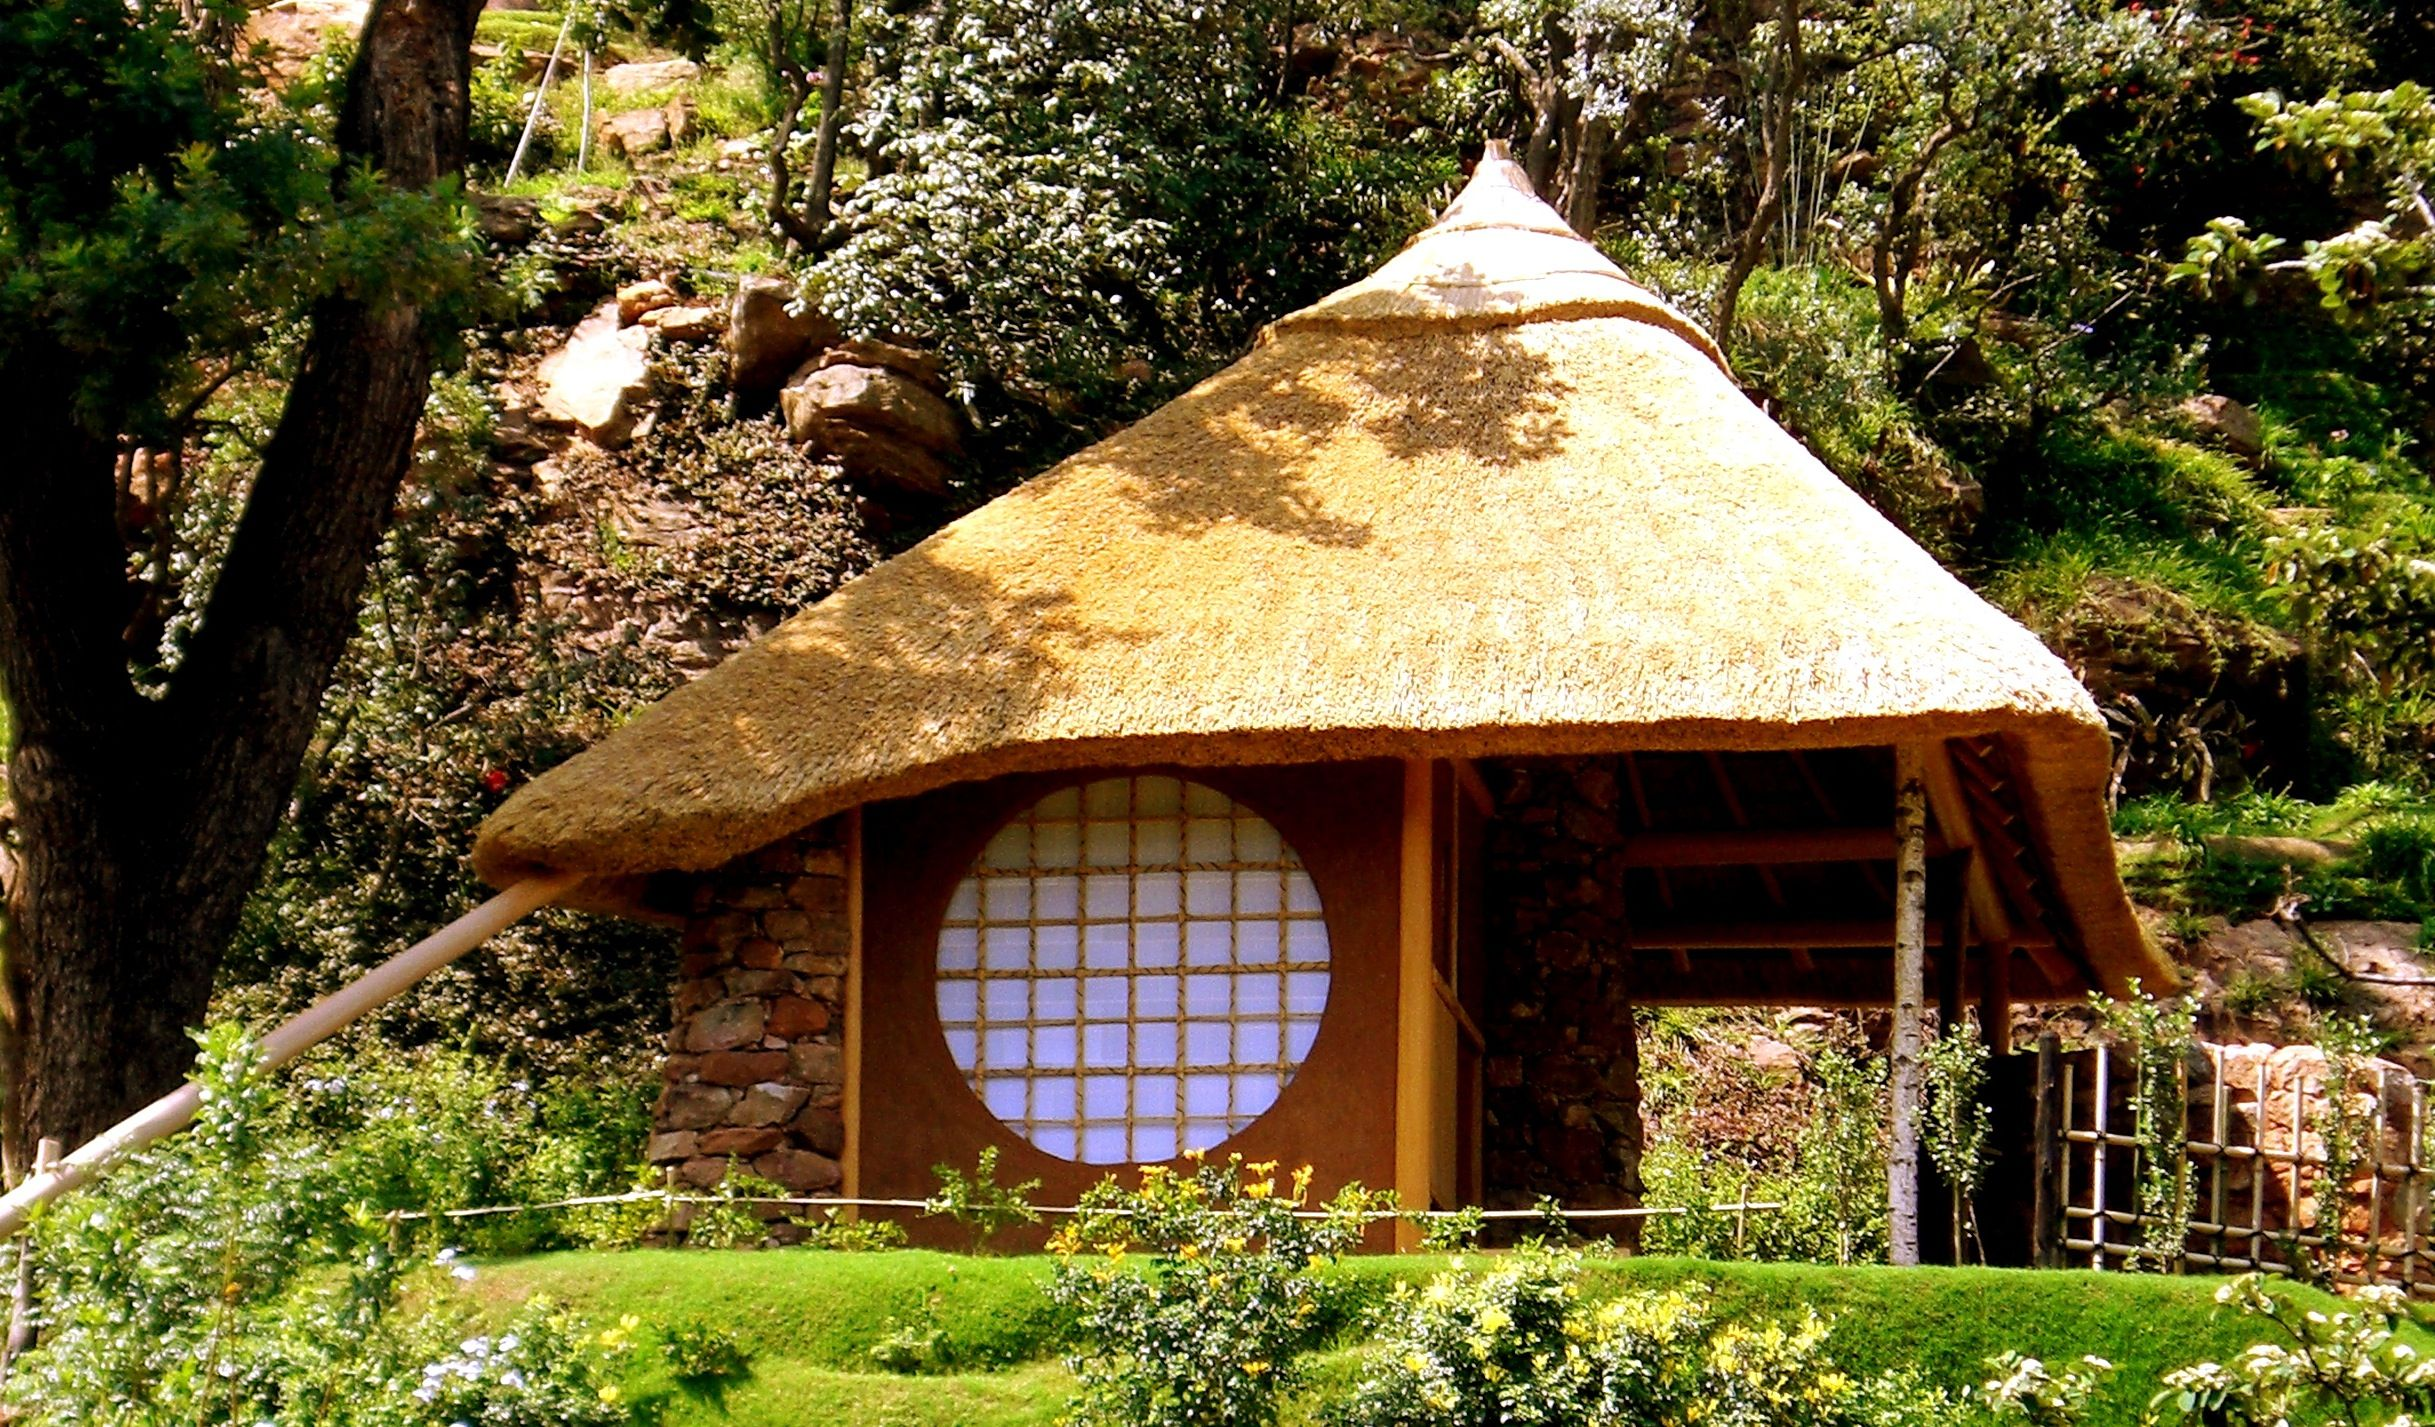 Tea House in Johannesburg by Masaharu Seno